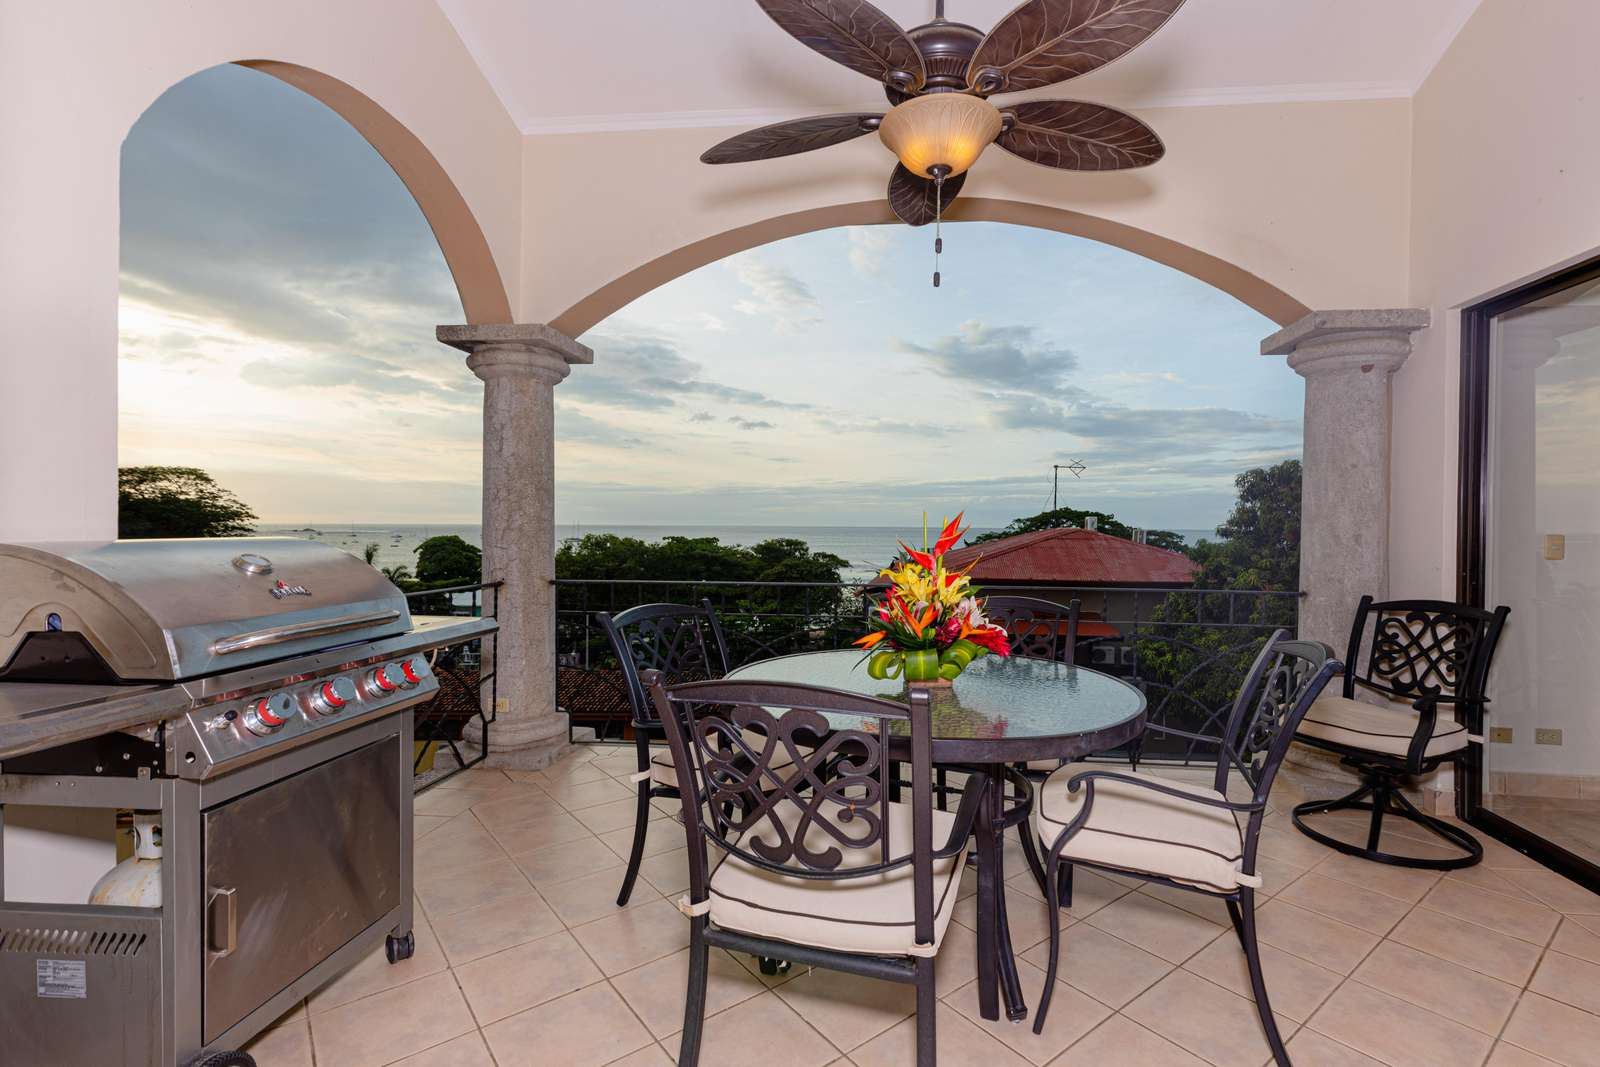 Sunrise 48, a Stunning ocean view penthouse condo in the heart of Tamarindo!